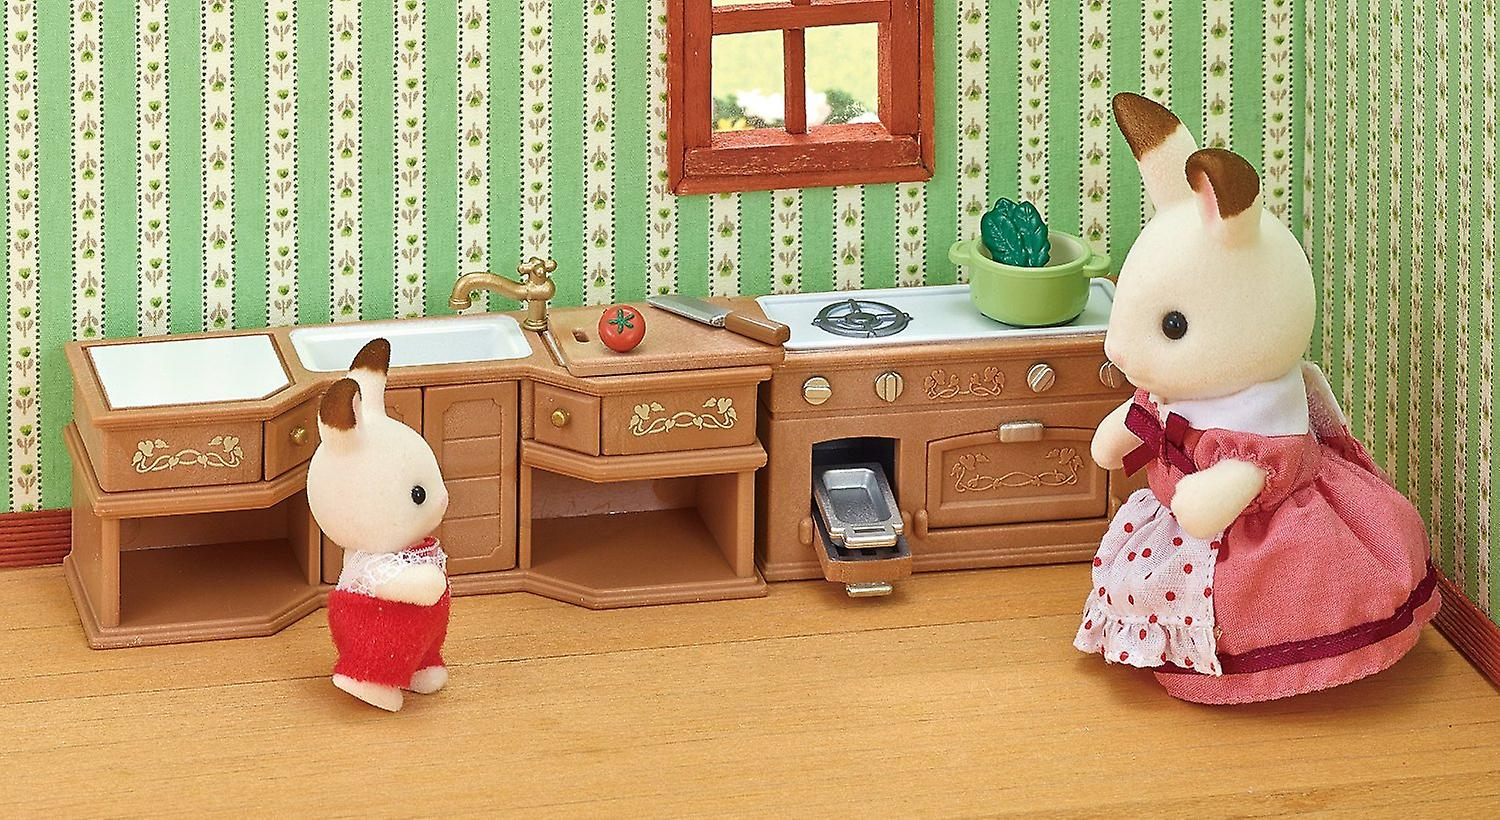 Sylvanian Families Stove, Sink And Counter Kitchen Set